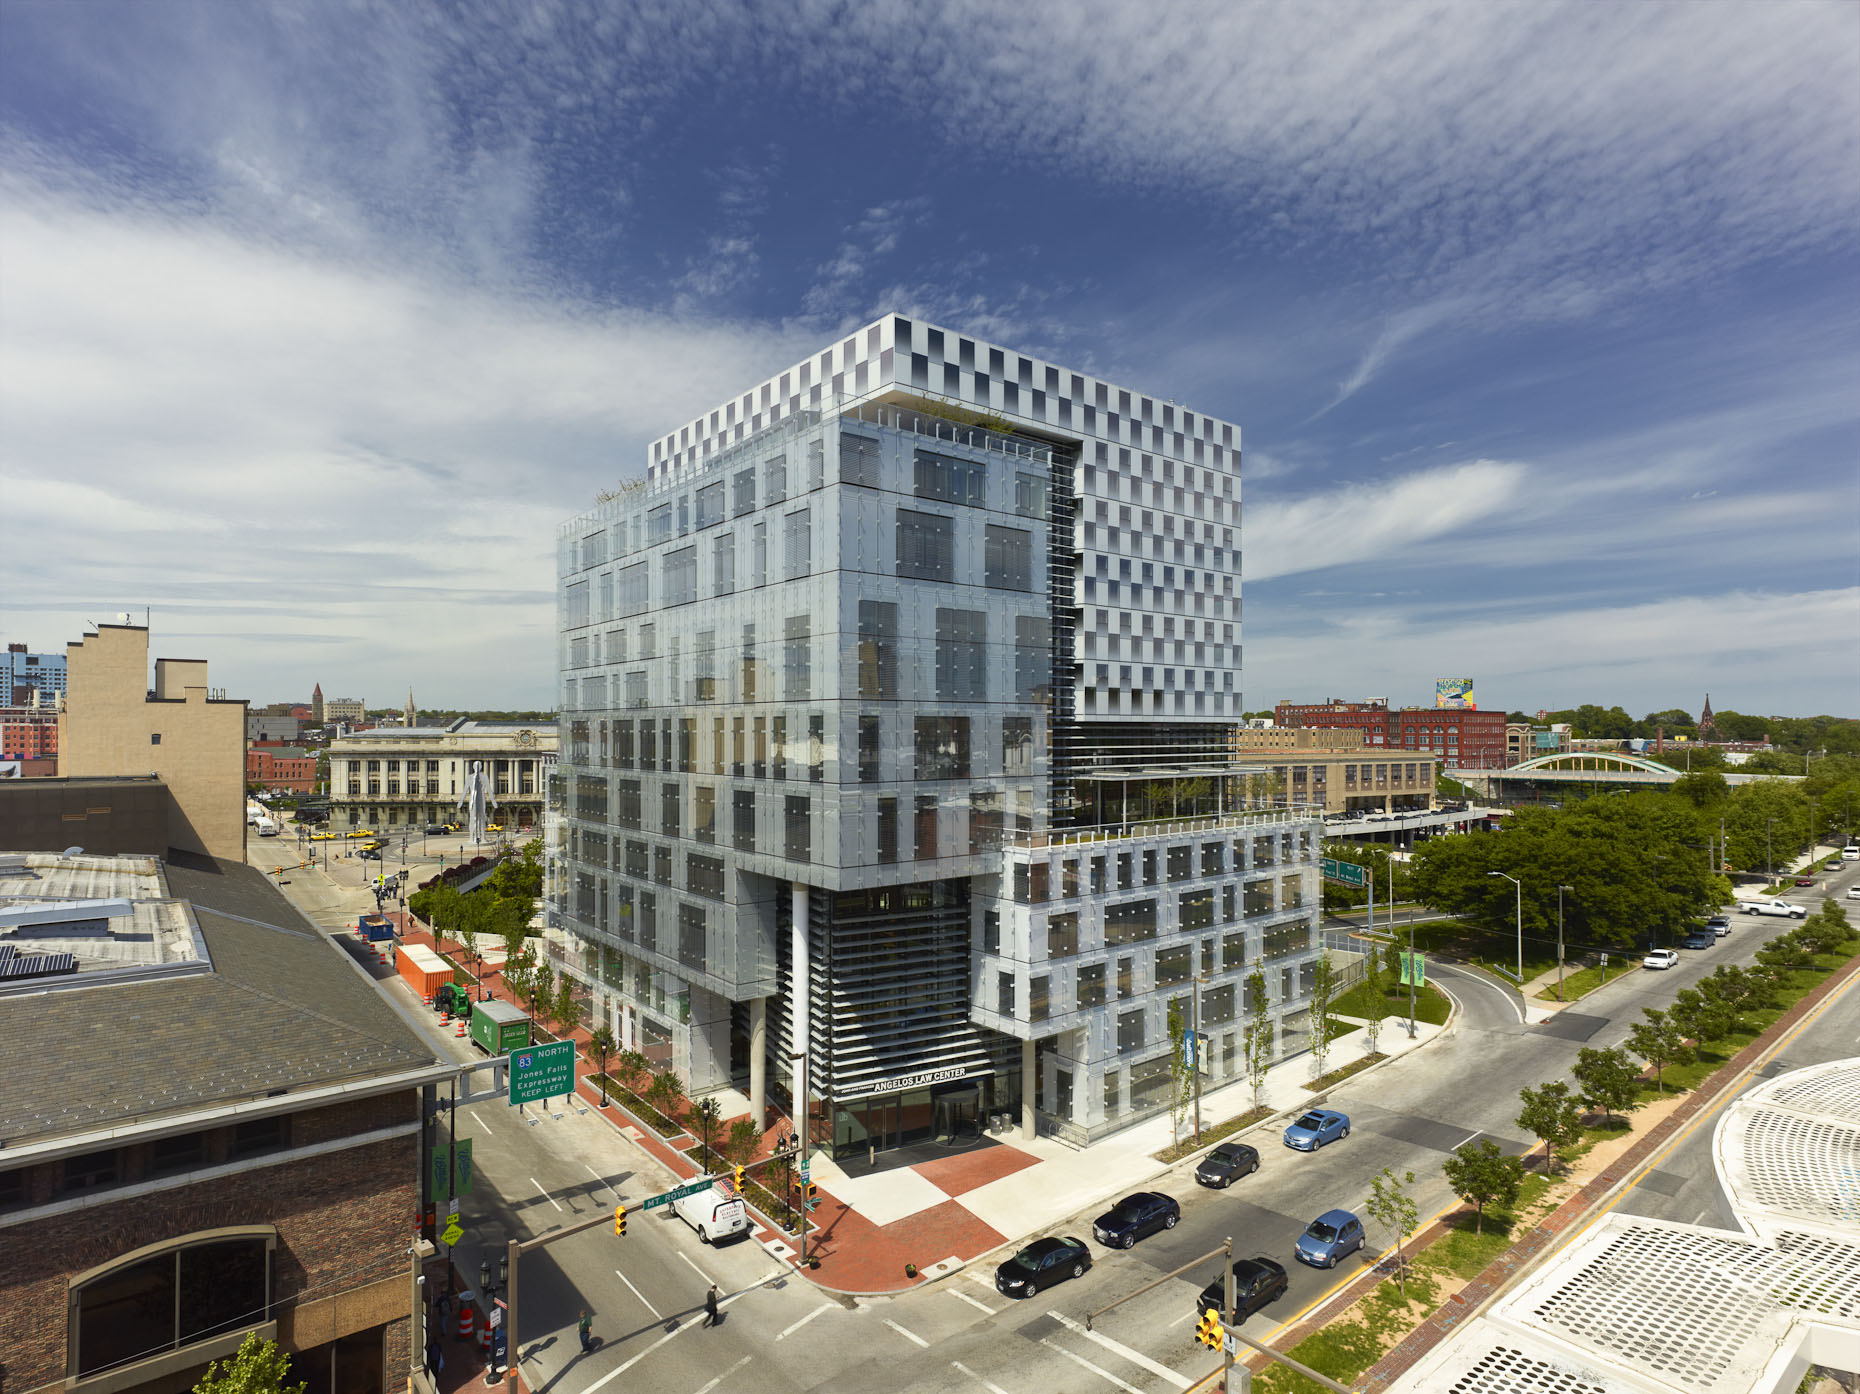 John & Frances Angelos Law Center at the University of Baltimore by Behnisch Architekten & Ayers Saint Gross